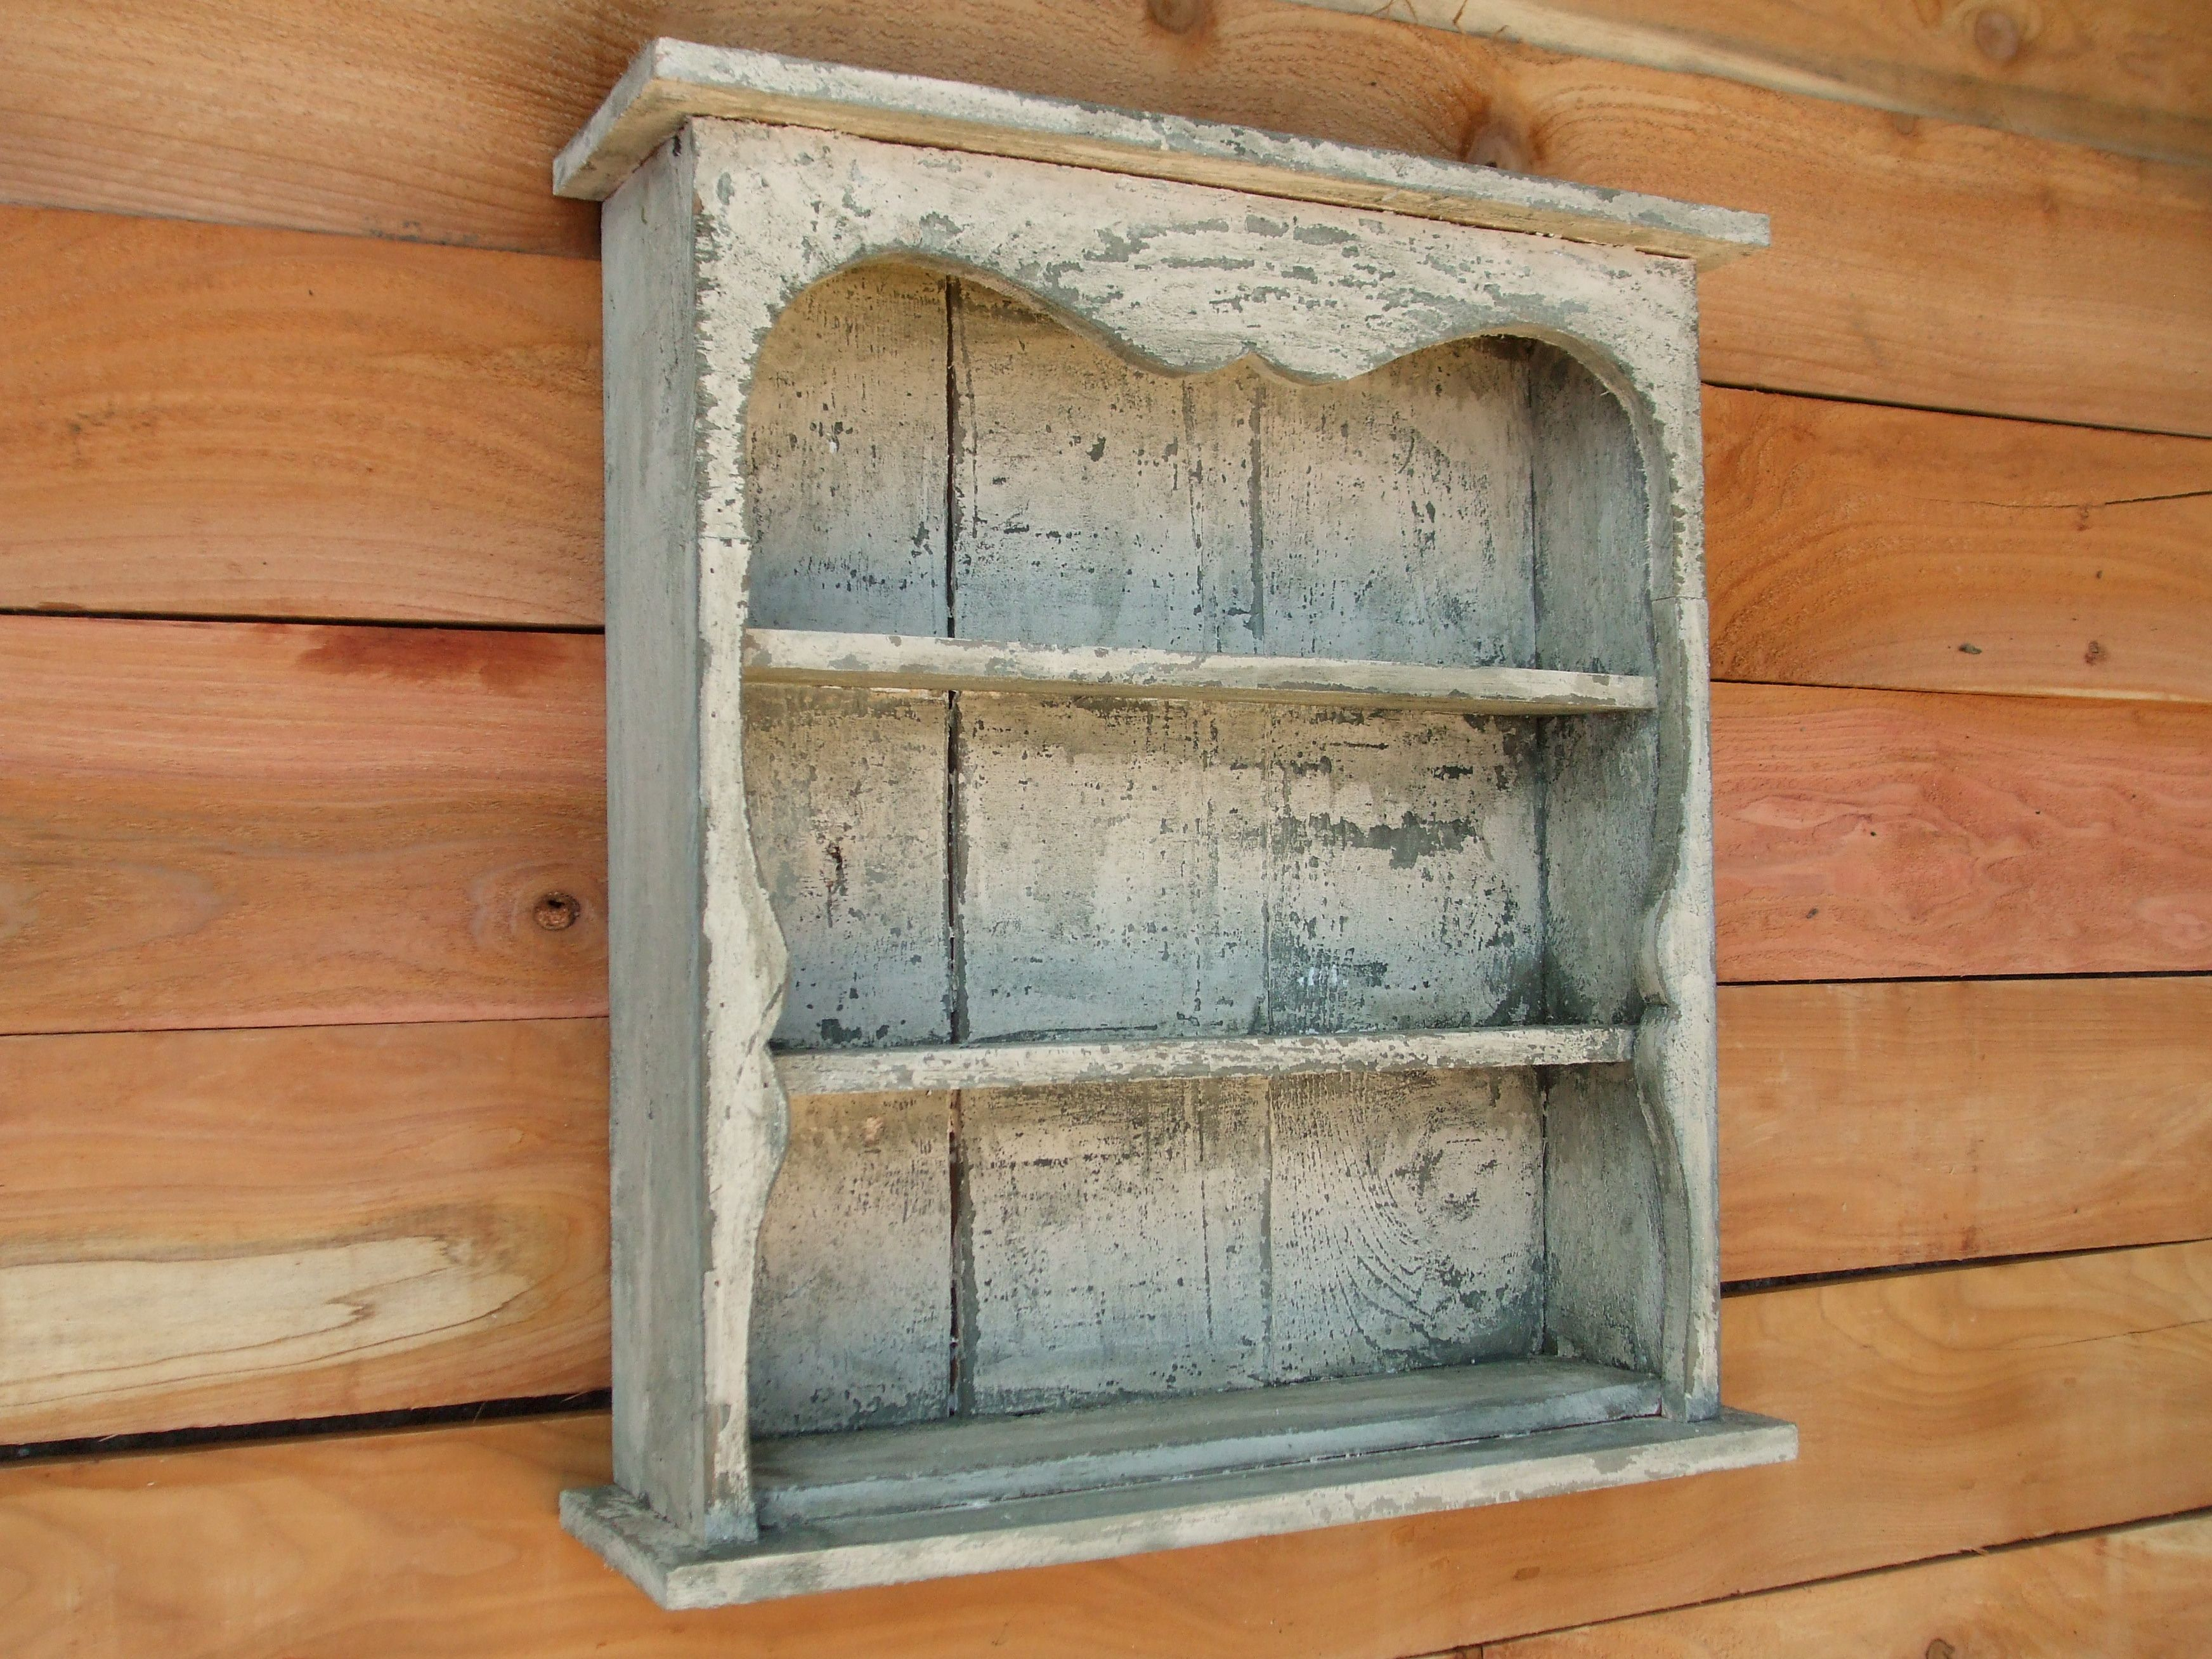 Buy a hand made shabby chic style black wall shelf distressed buy a hand made shabby chic style black wall shelf distressed book shelf french country display case made to order from farmhouse furniture tx amipublicfo Image collections